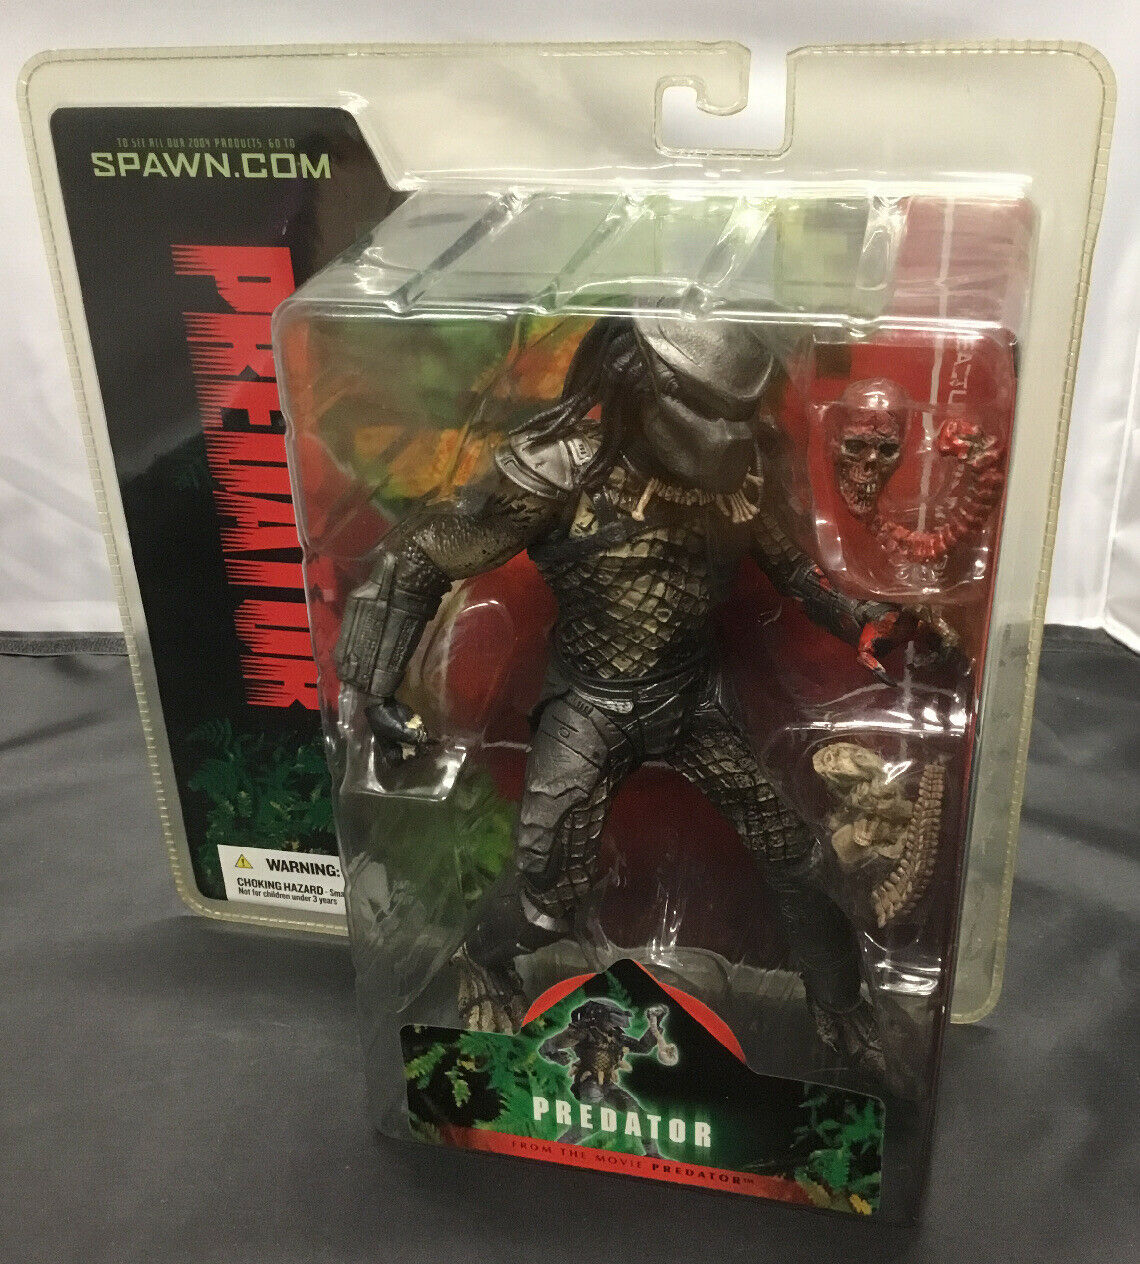 MCFARLANE giocattoli ProssoATOR WITH BLOODY SKULL VARIANT azione cifra